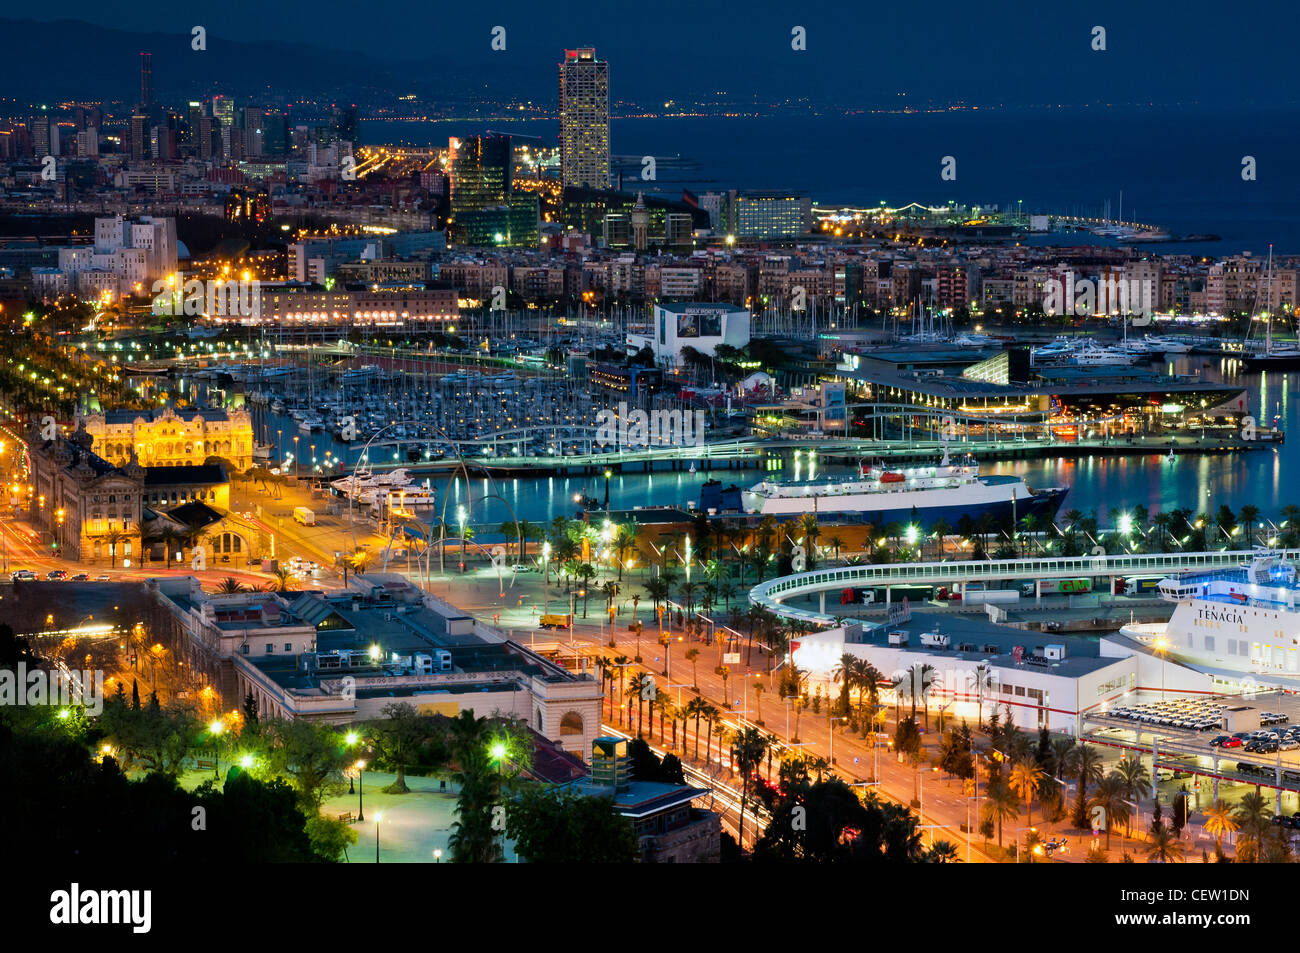 Panoramic view at night from Montjuic over Port Vell, Barcelona, Catalonia, Spain - Stock Image